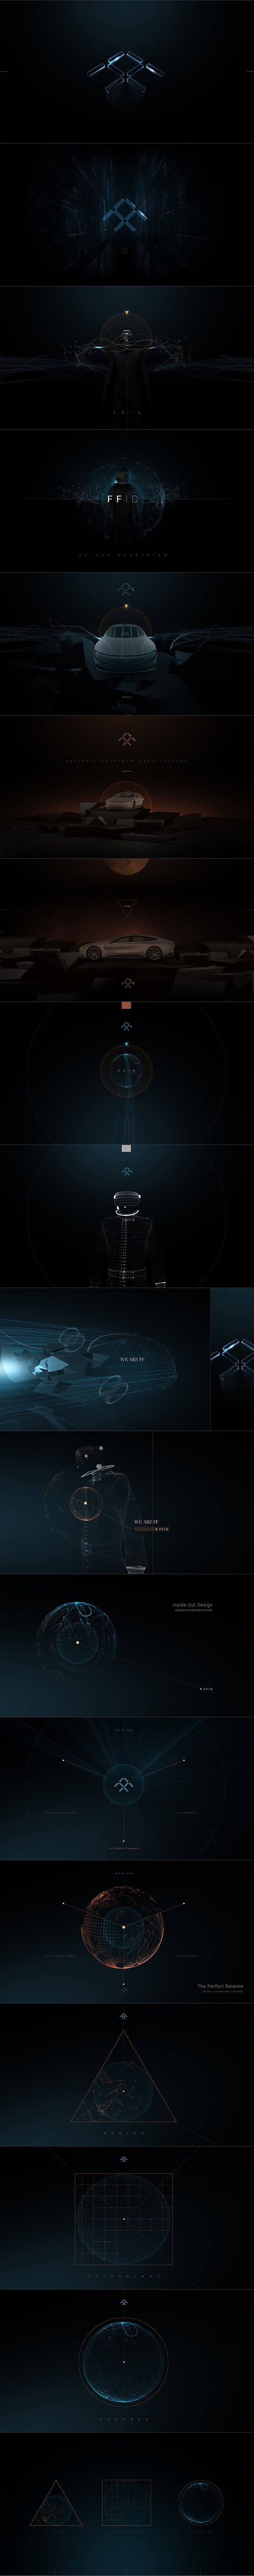 Faraday Future - Interactive design concepts by Eric Jordan [Set 1] #design #webdesign #website